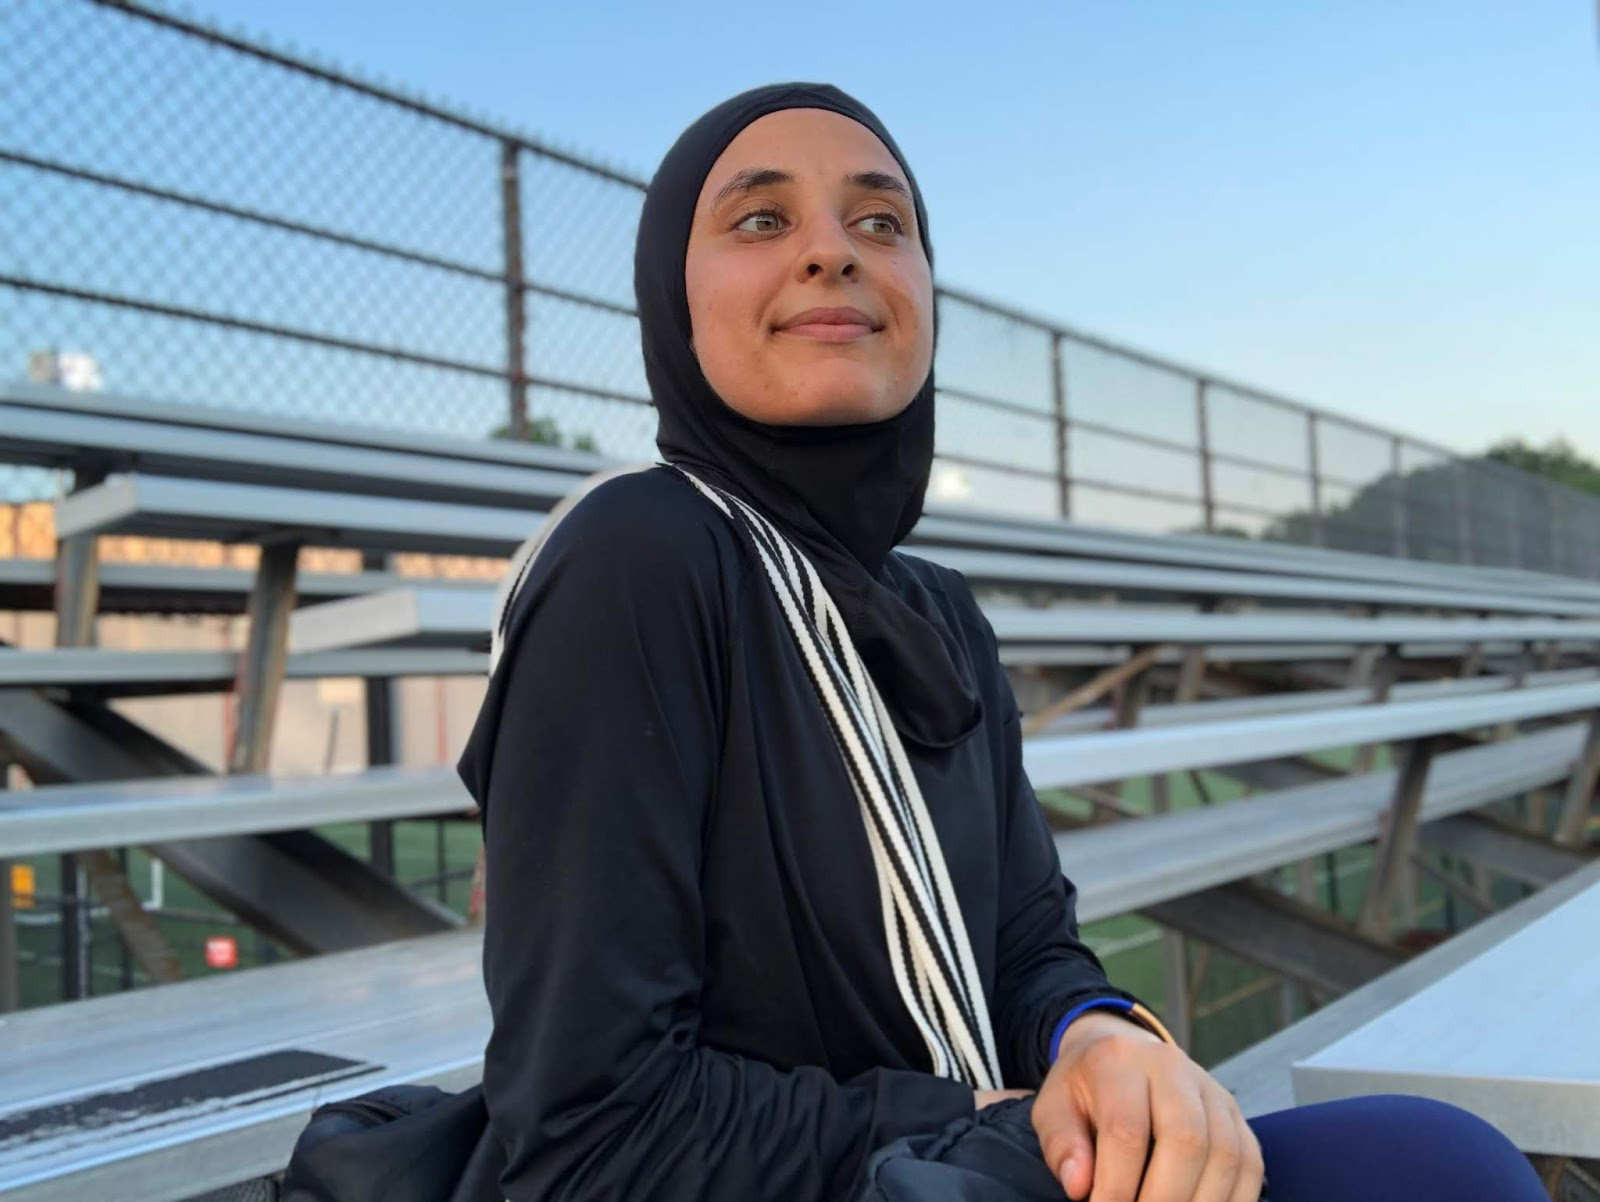 Sahara sitting on a bench at the track with track bag, smiling at camera in black nike hijab